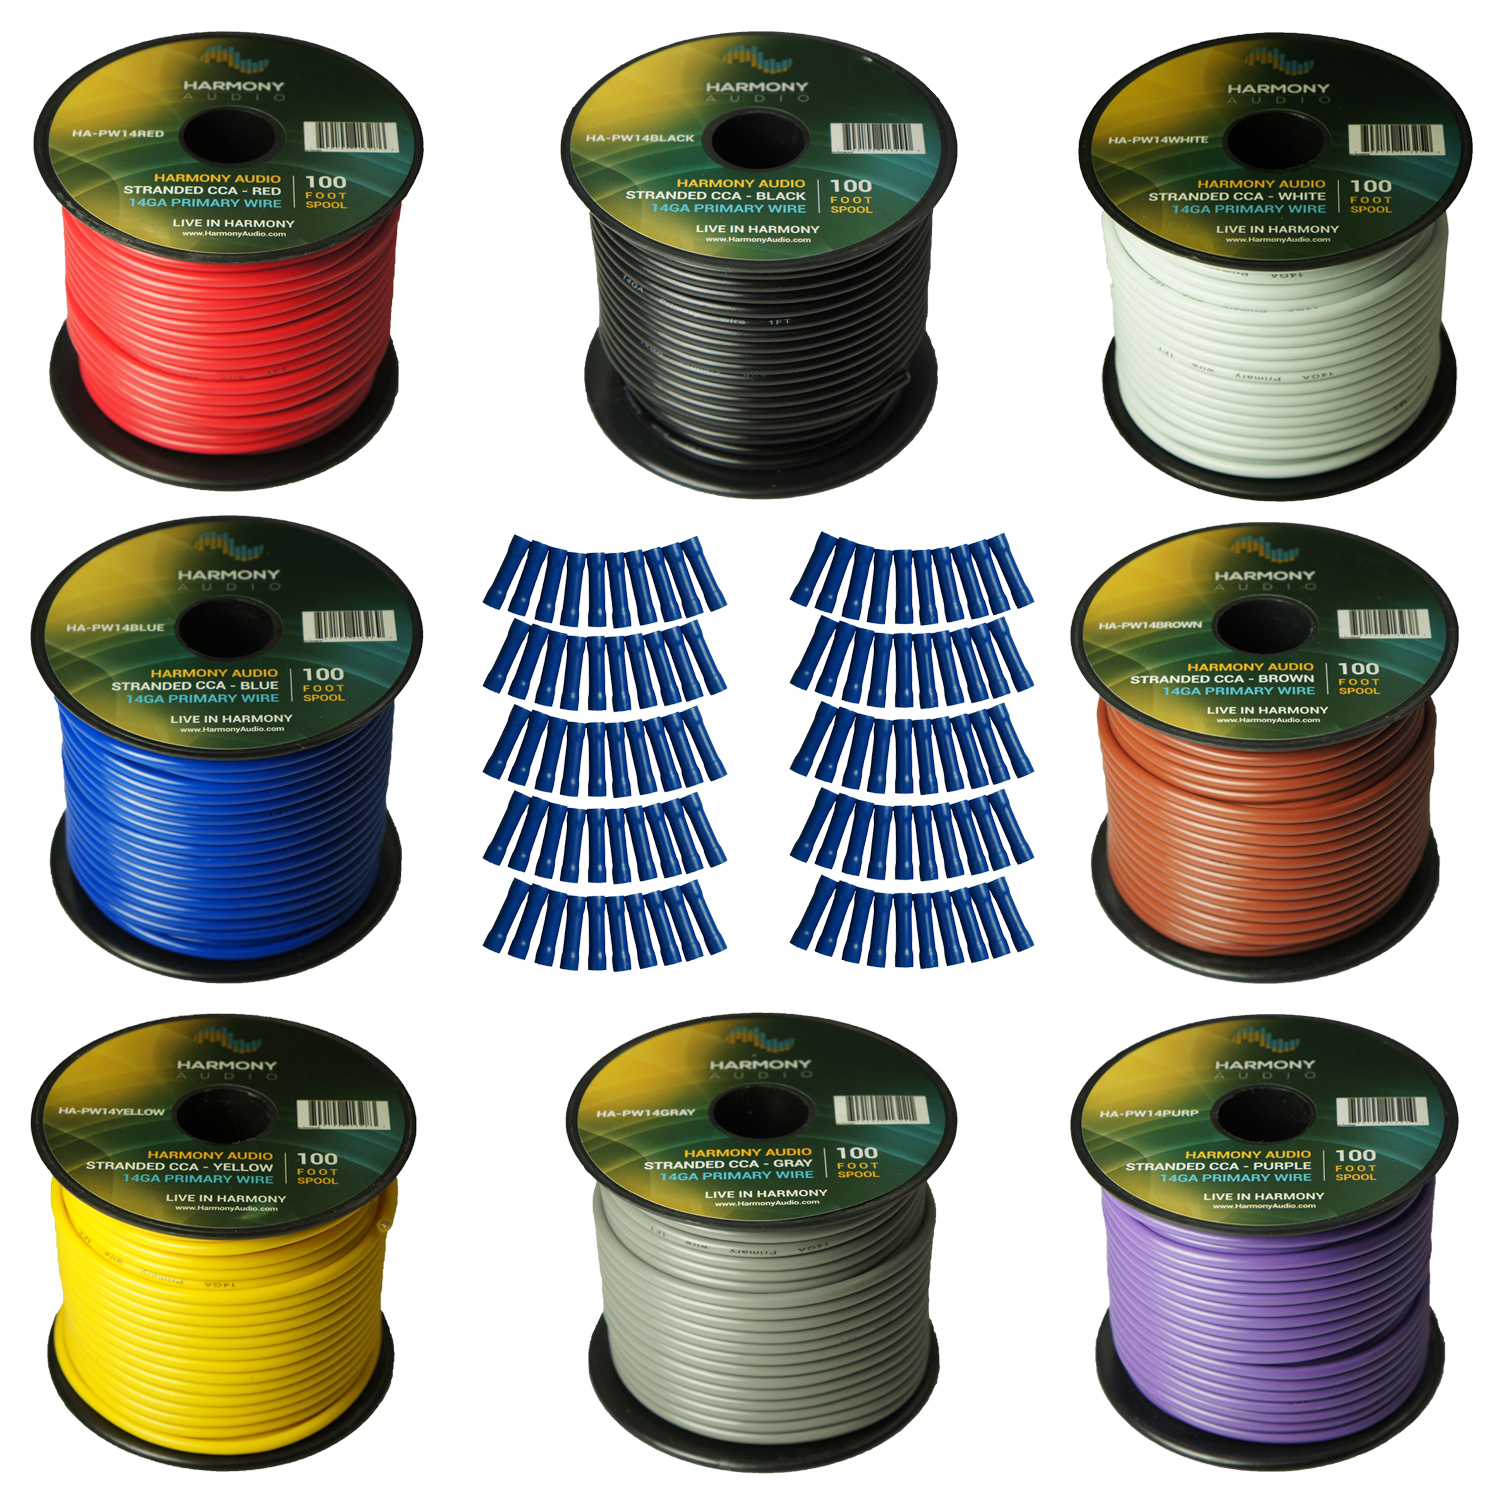 Harmony Audio Primary Single Conductor 14 Gauge Power or Ground Wire - 8 Rolls - 800 Feet - 8 Color Mix for Car Audio / Trailer / Model Train / Remote